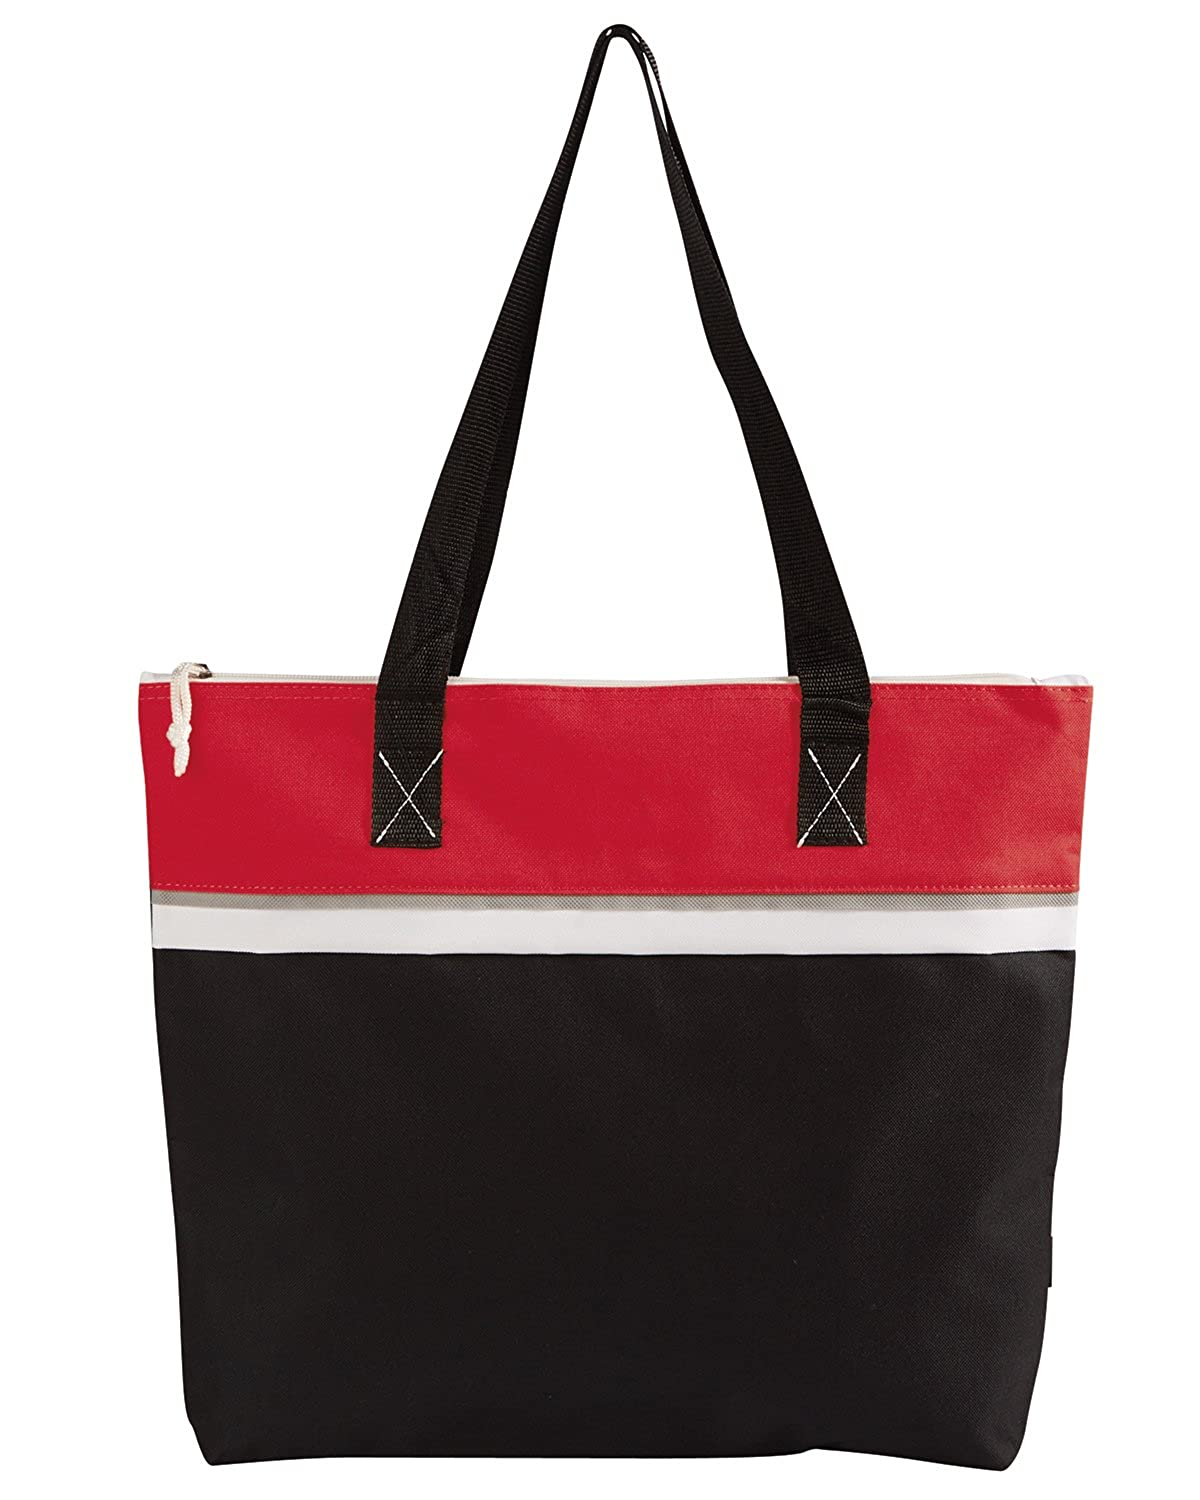 GL1610 Gemline mens Muse Convention Tote